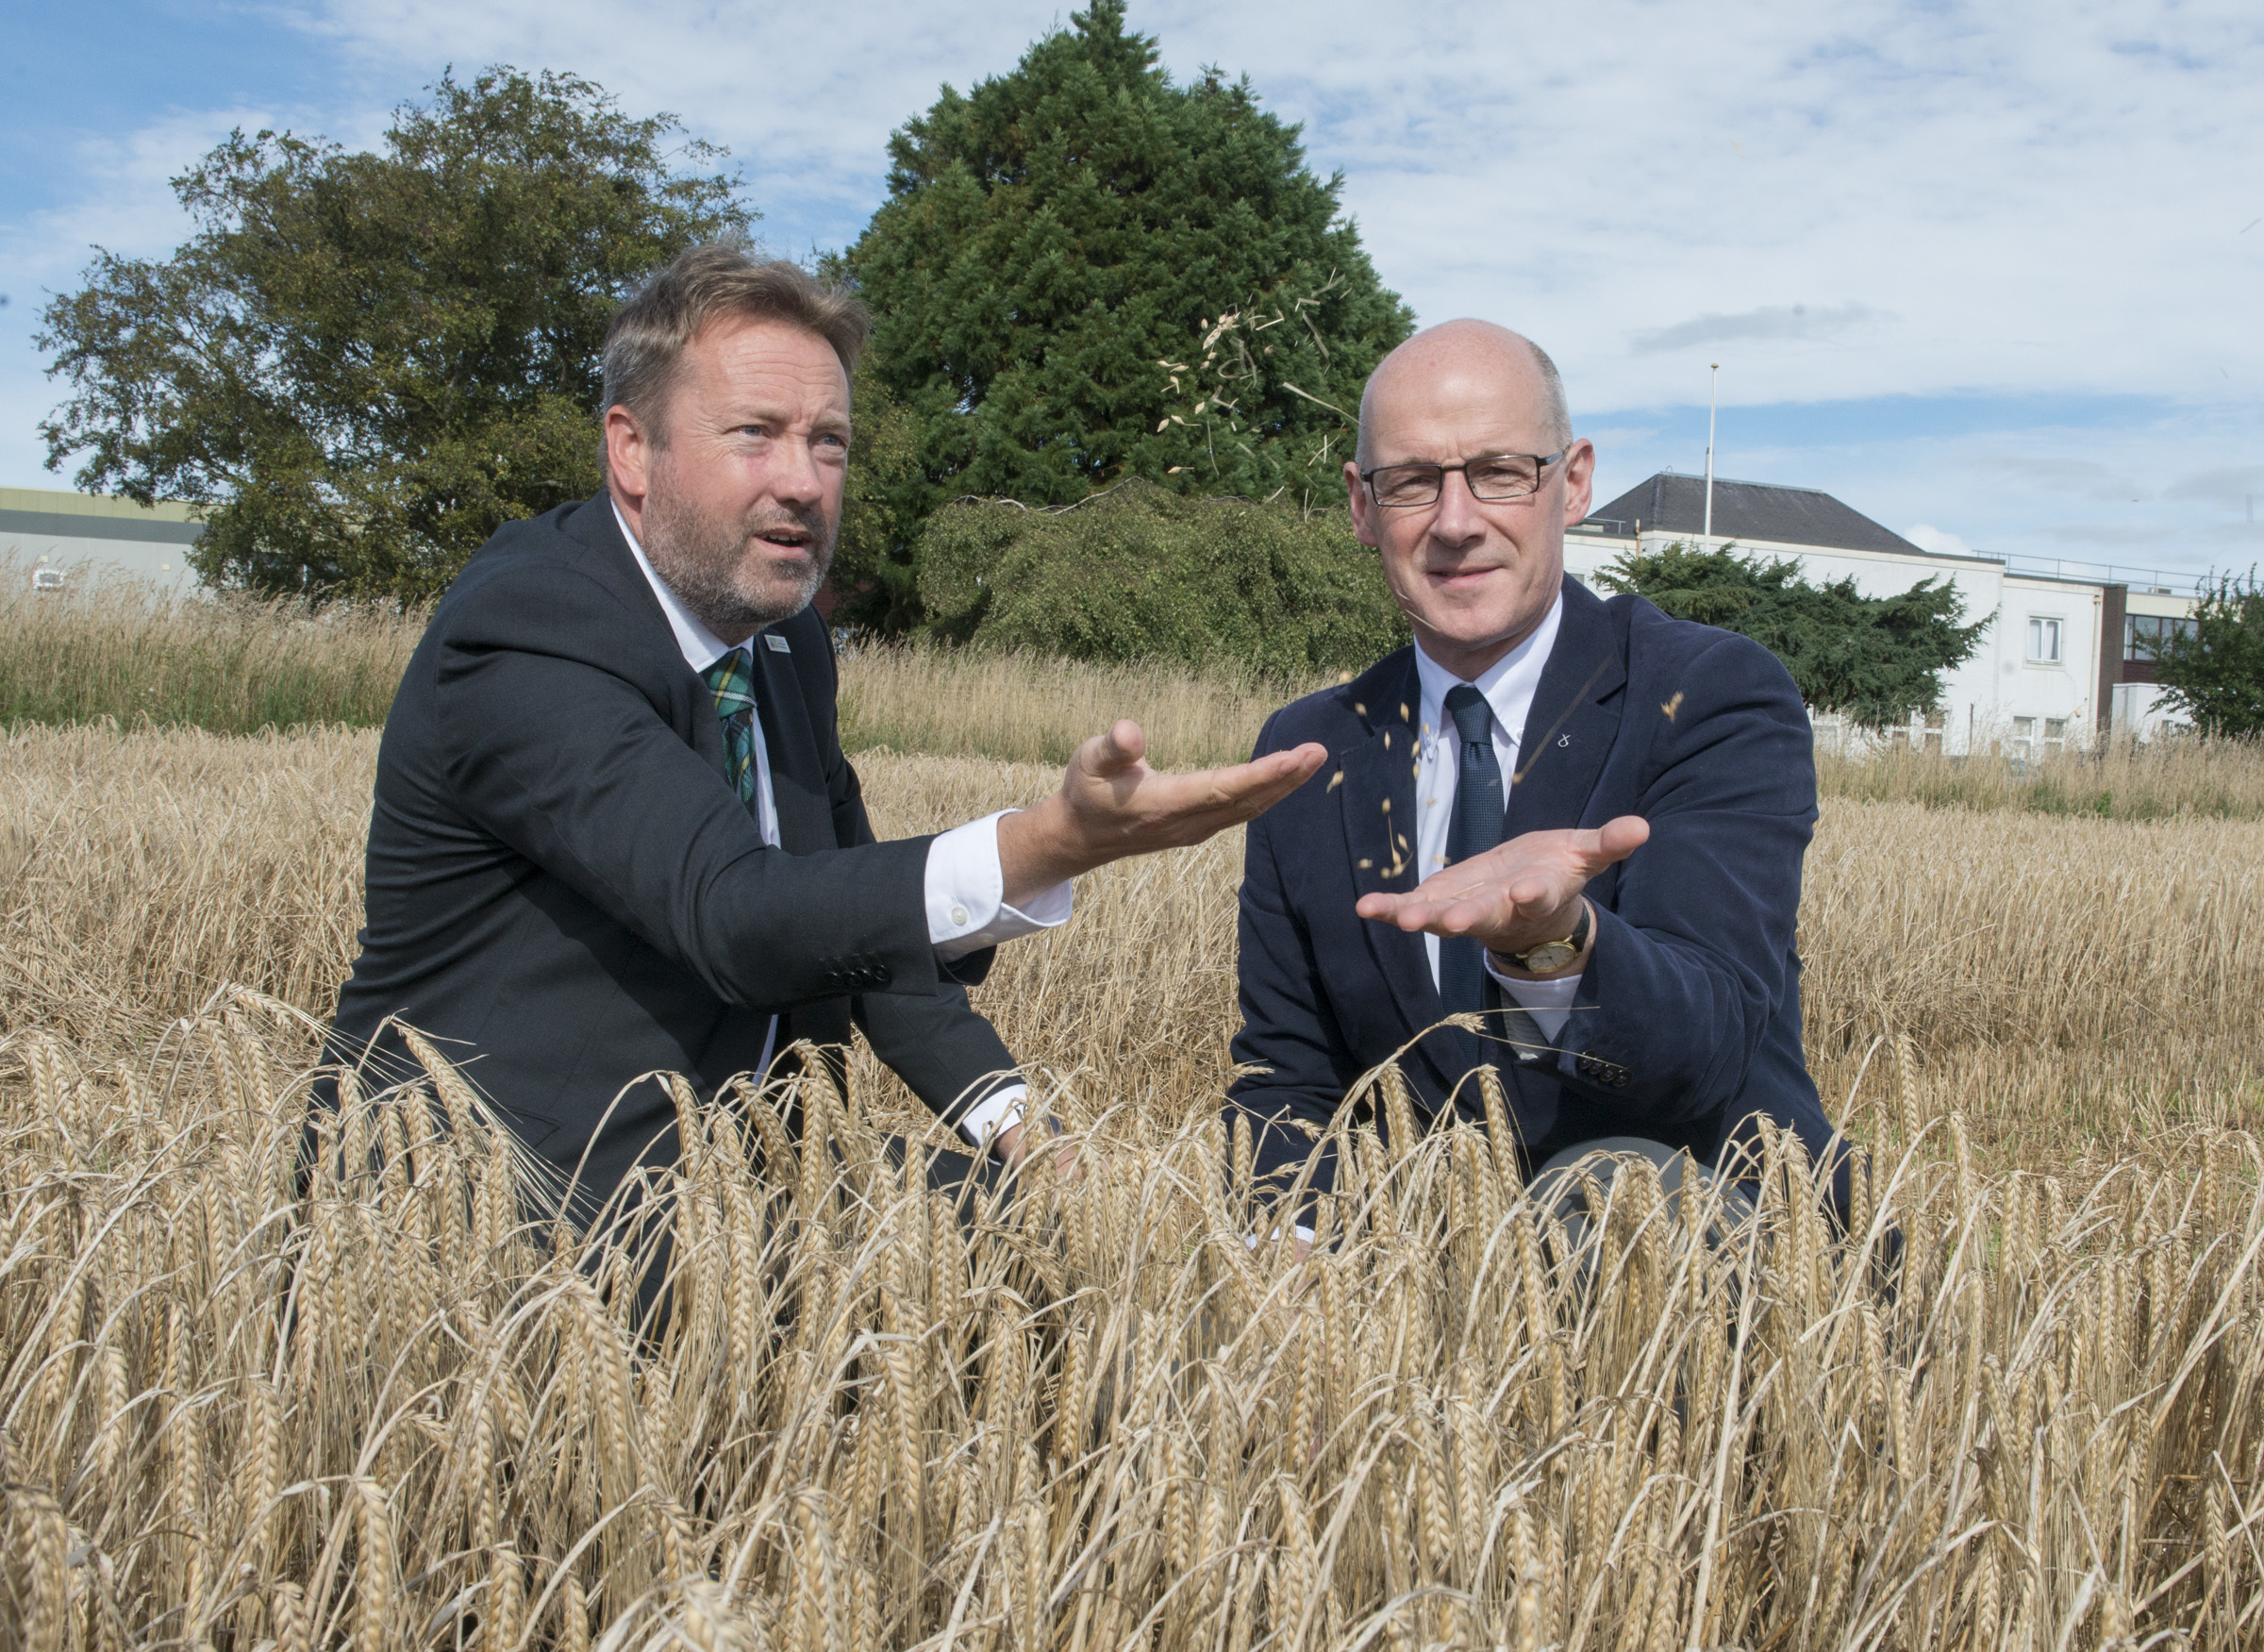 The barley hub project is predicted to create 3500 jobs in barley-related industries